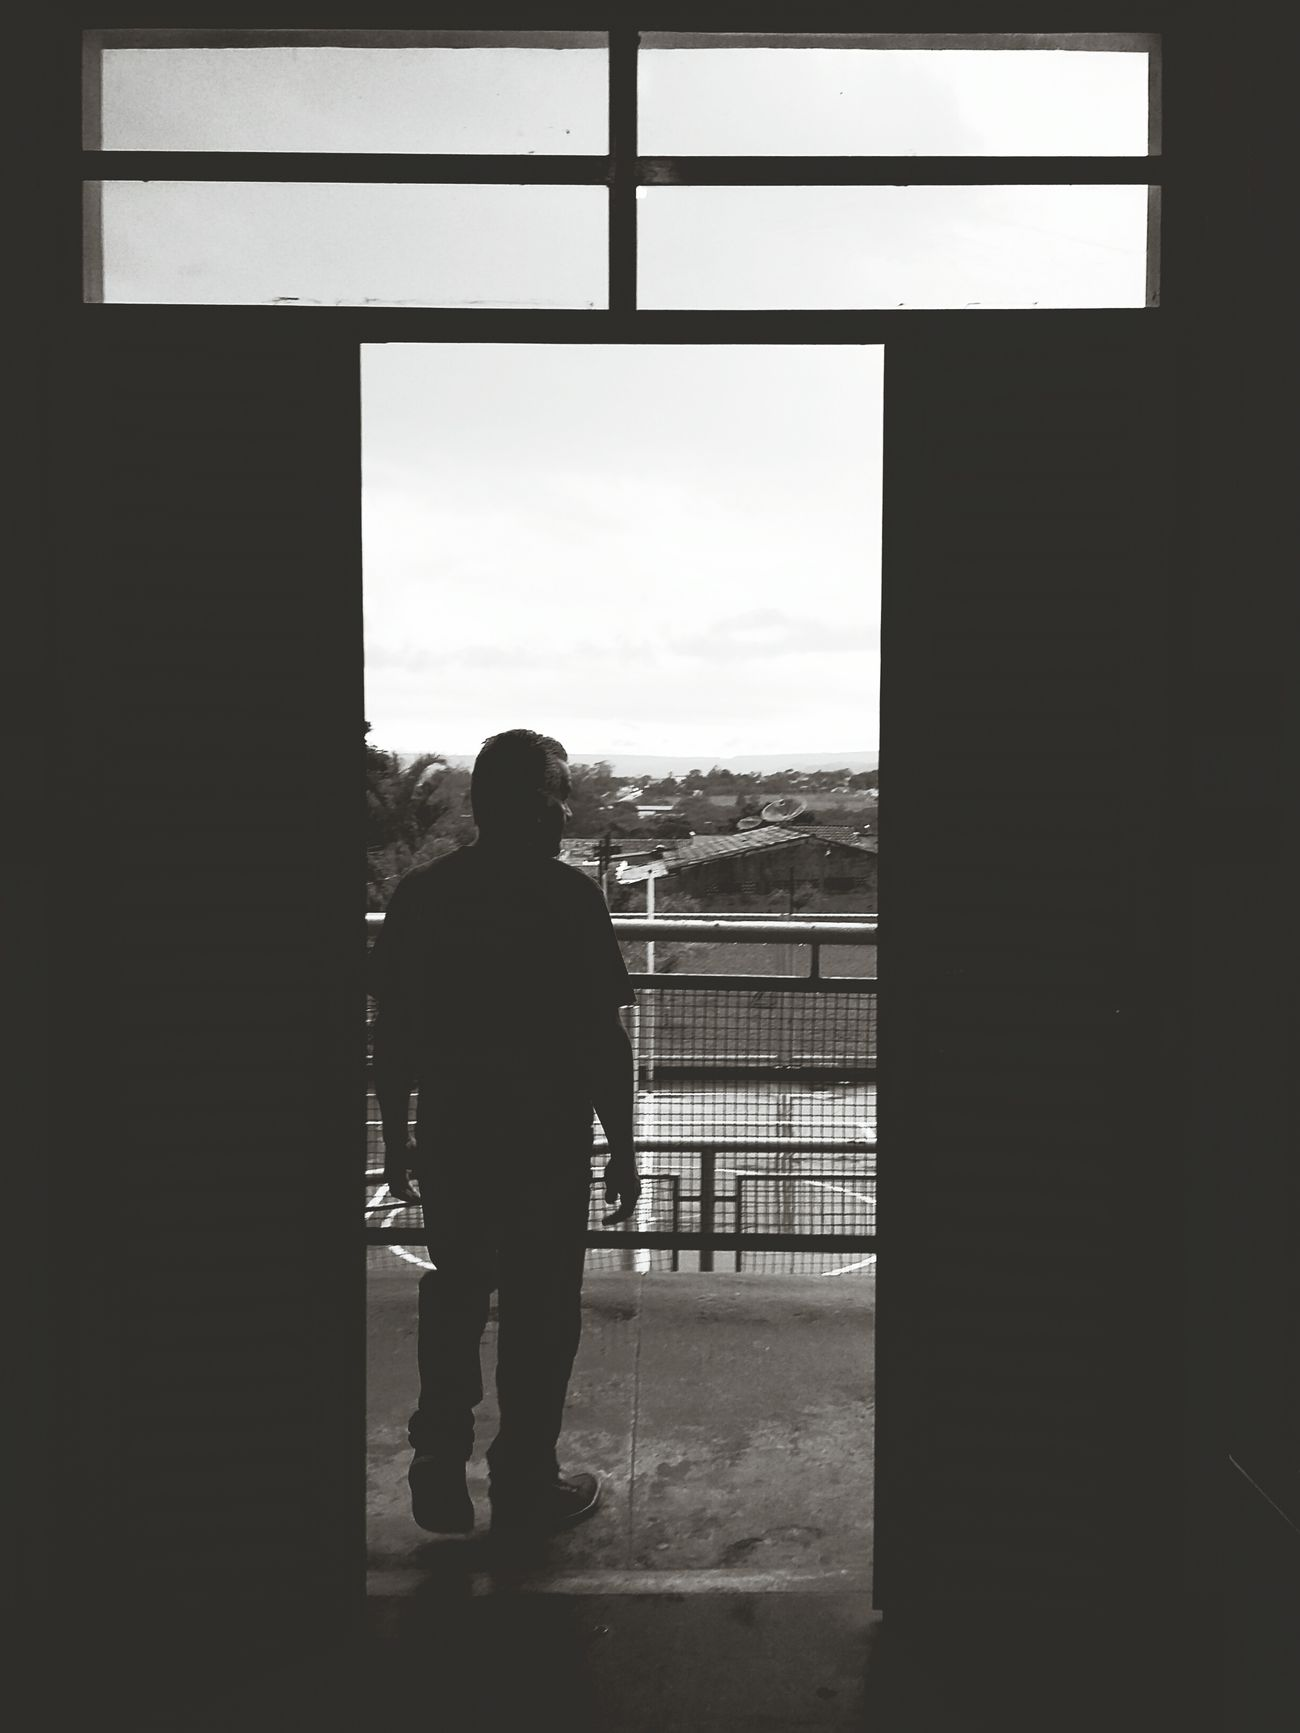 Silhouette Rear View Window Adult Men One Person Indoors  One Man Only Day People Adults Only Only Men Bws_worldwide Bwstyleoftheday Bw_collection BW_photography Bw_lover Bwphotography Bwbeauty Brasília - Brazil Brasiliangallery Brasilianphotographeinparis Brasilia Brasil DF Brasília Brasilian City